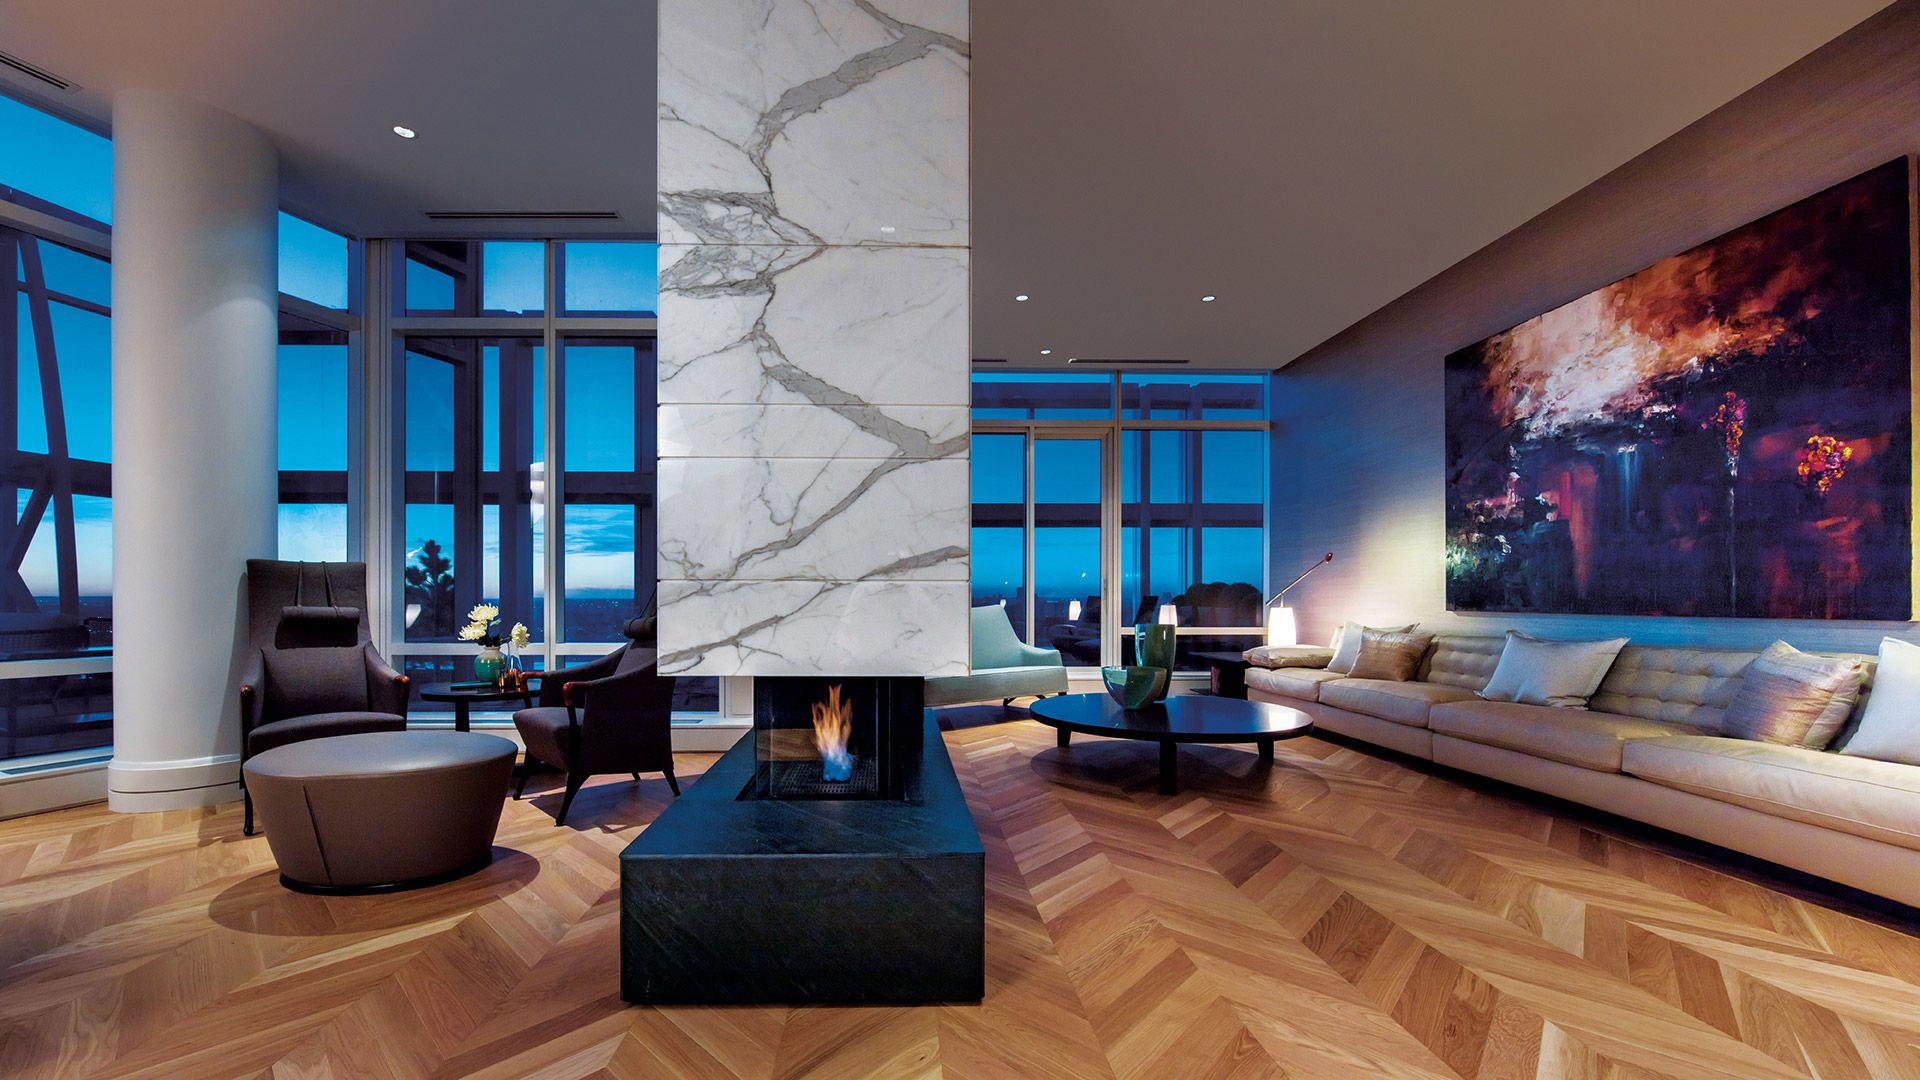 Pin by Darryl Dioso on My Style Luxury living, Luxury